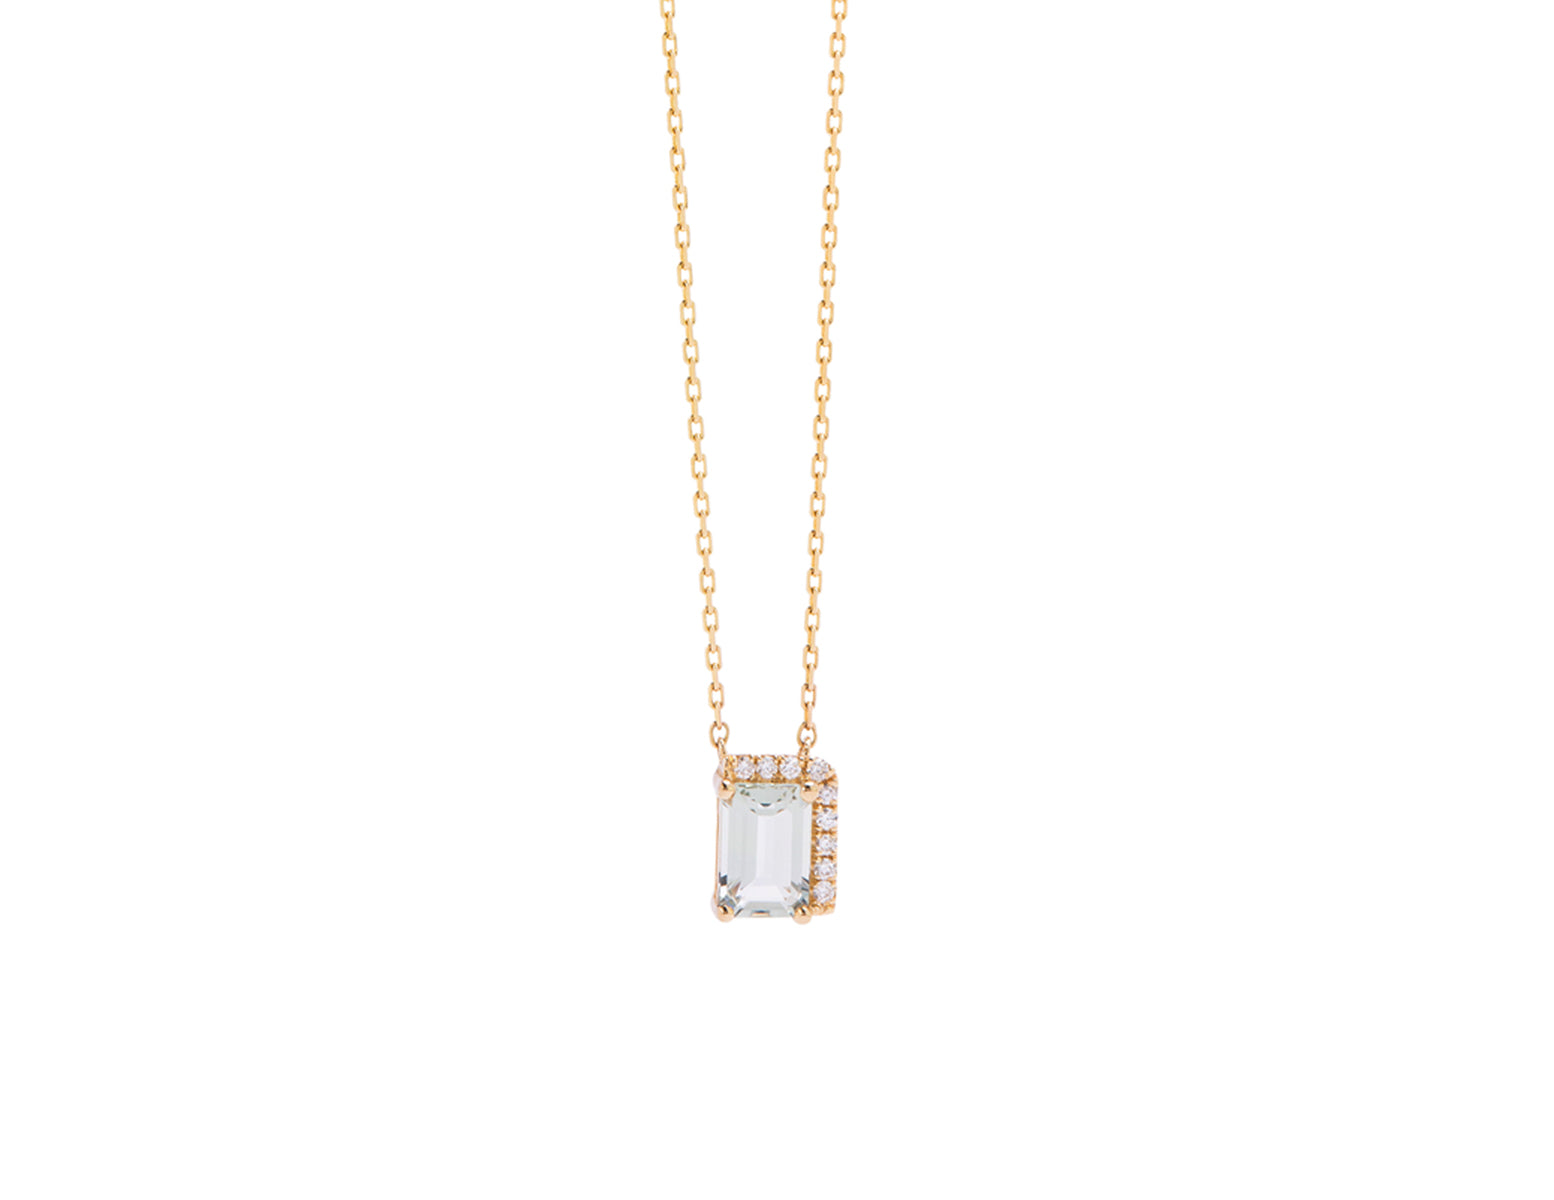 14K YELLOW GOLD AMALFI SINGLE BAGUETTE WITH DIAMONDS PENDANT